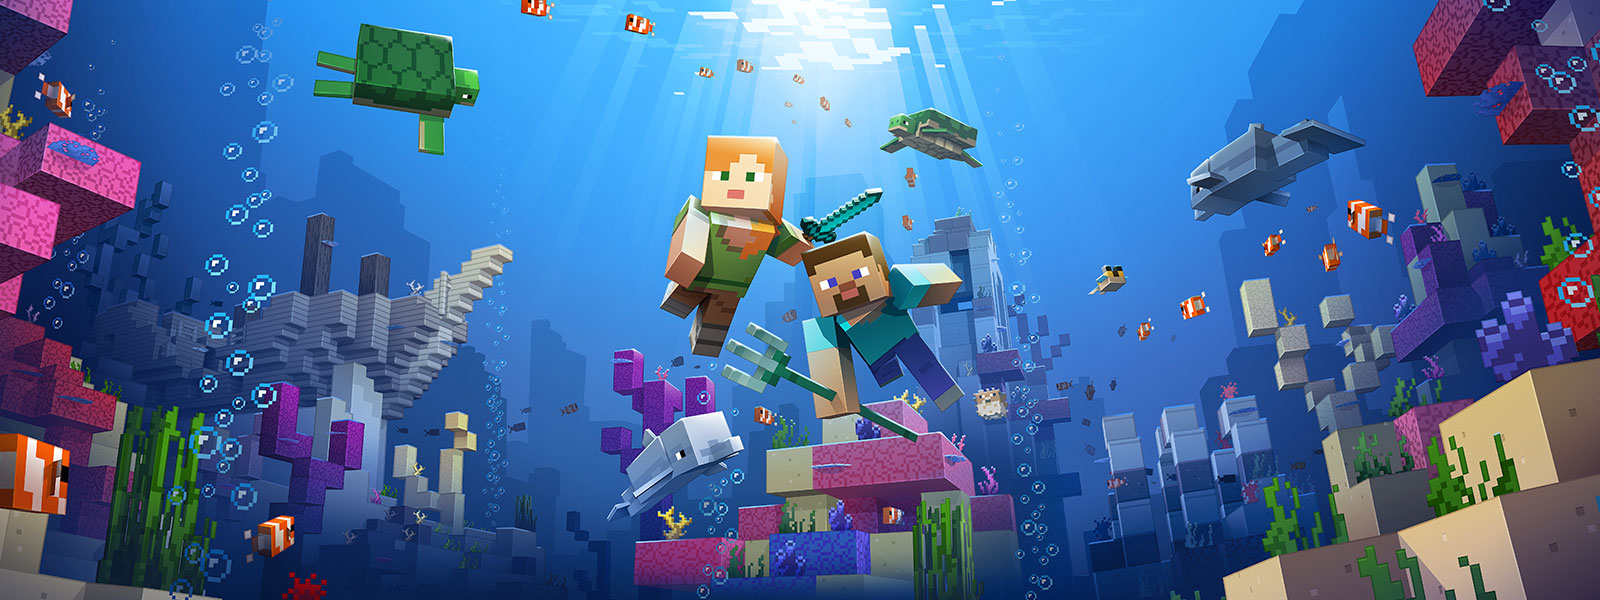 Two Minecraft characters explore an underwater biome